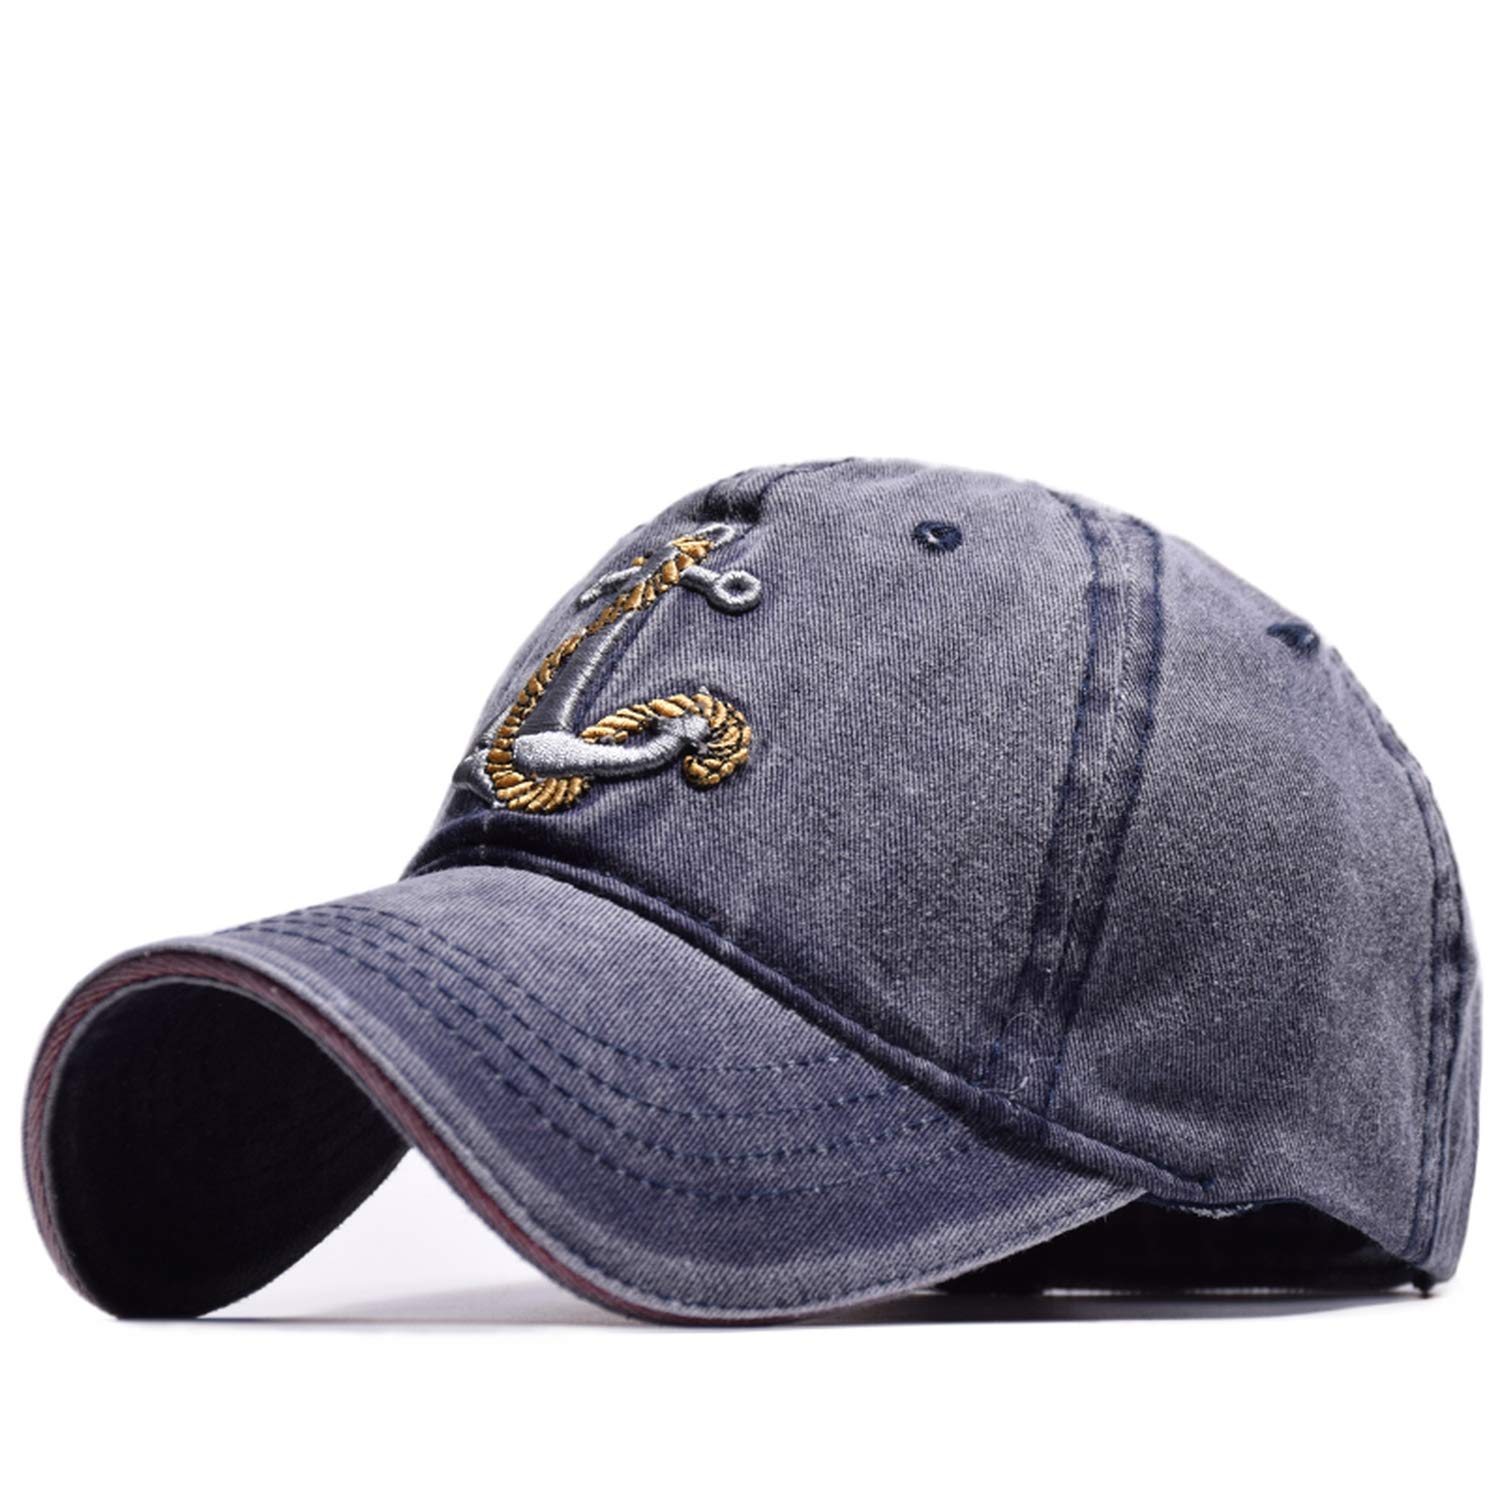 CHENTAI New Vintage Style Baseball Cap Old Pirate Ship Anchor Embroidery Snapback Fashion Sports Hat Men Women Sun Cap